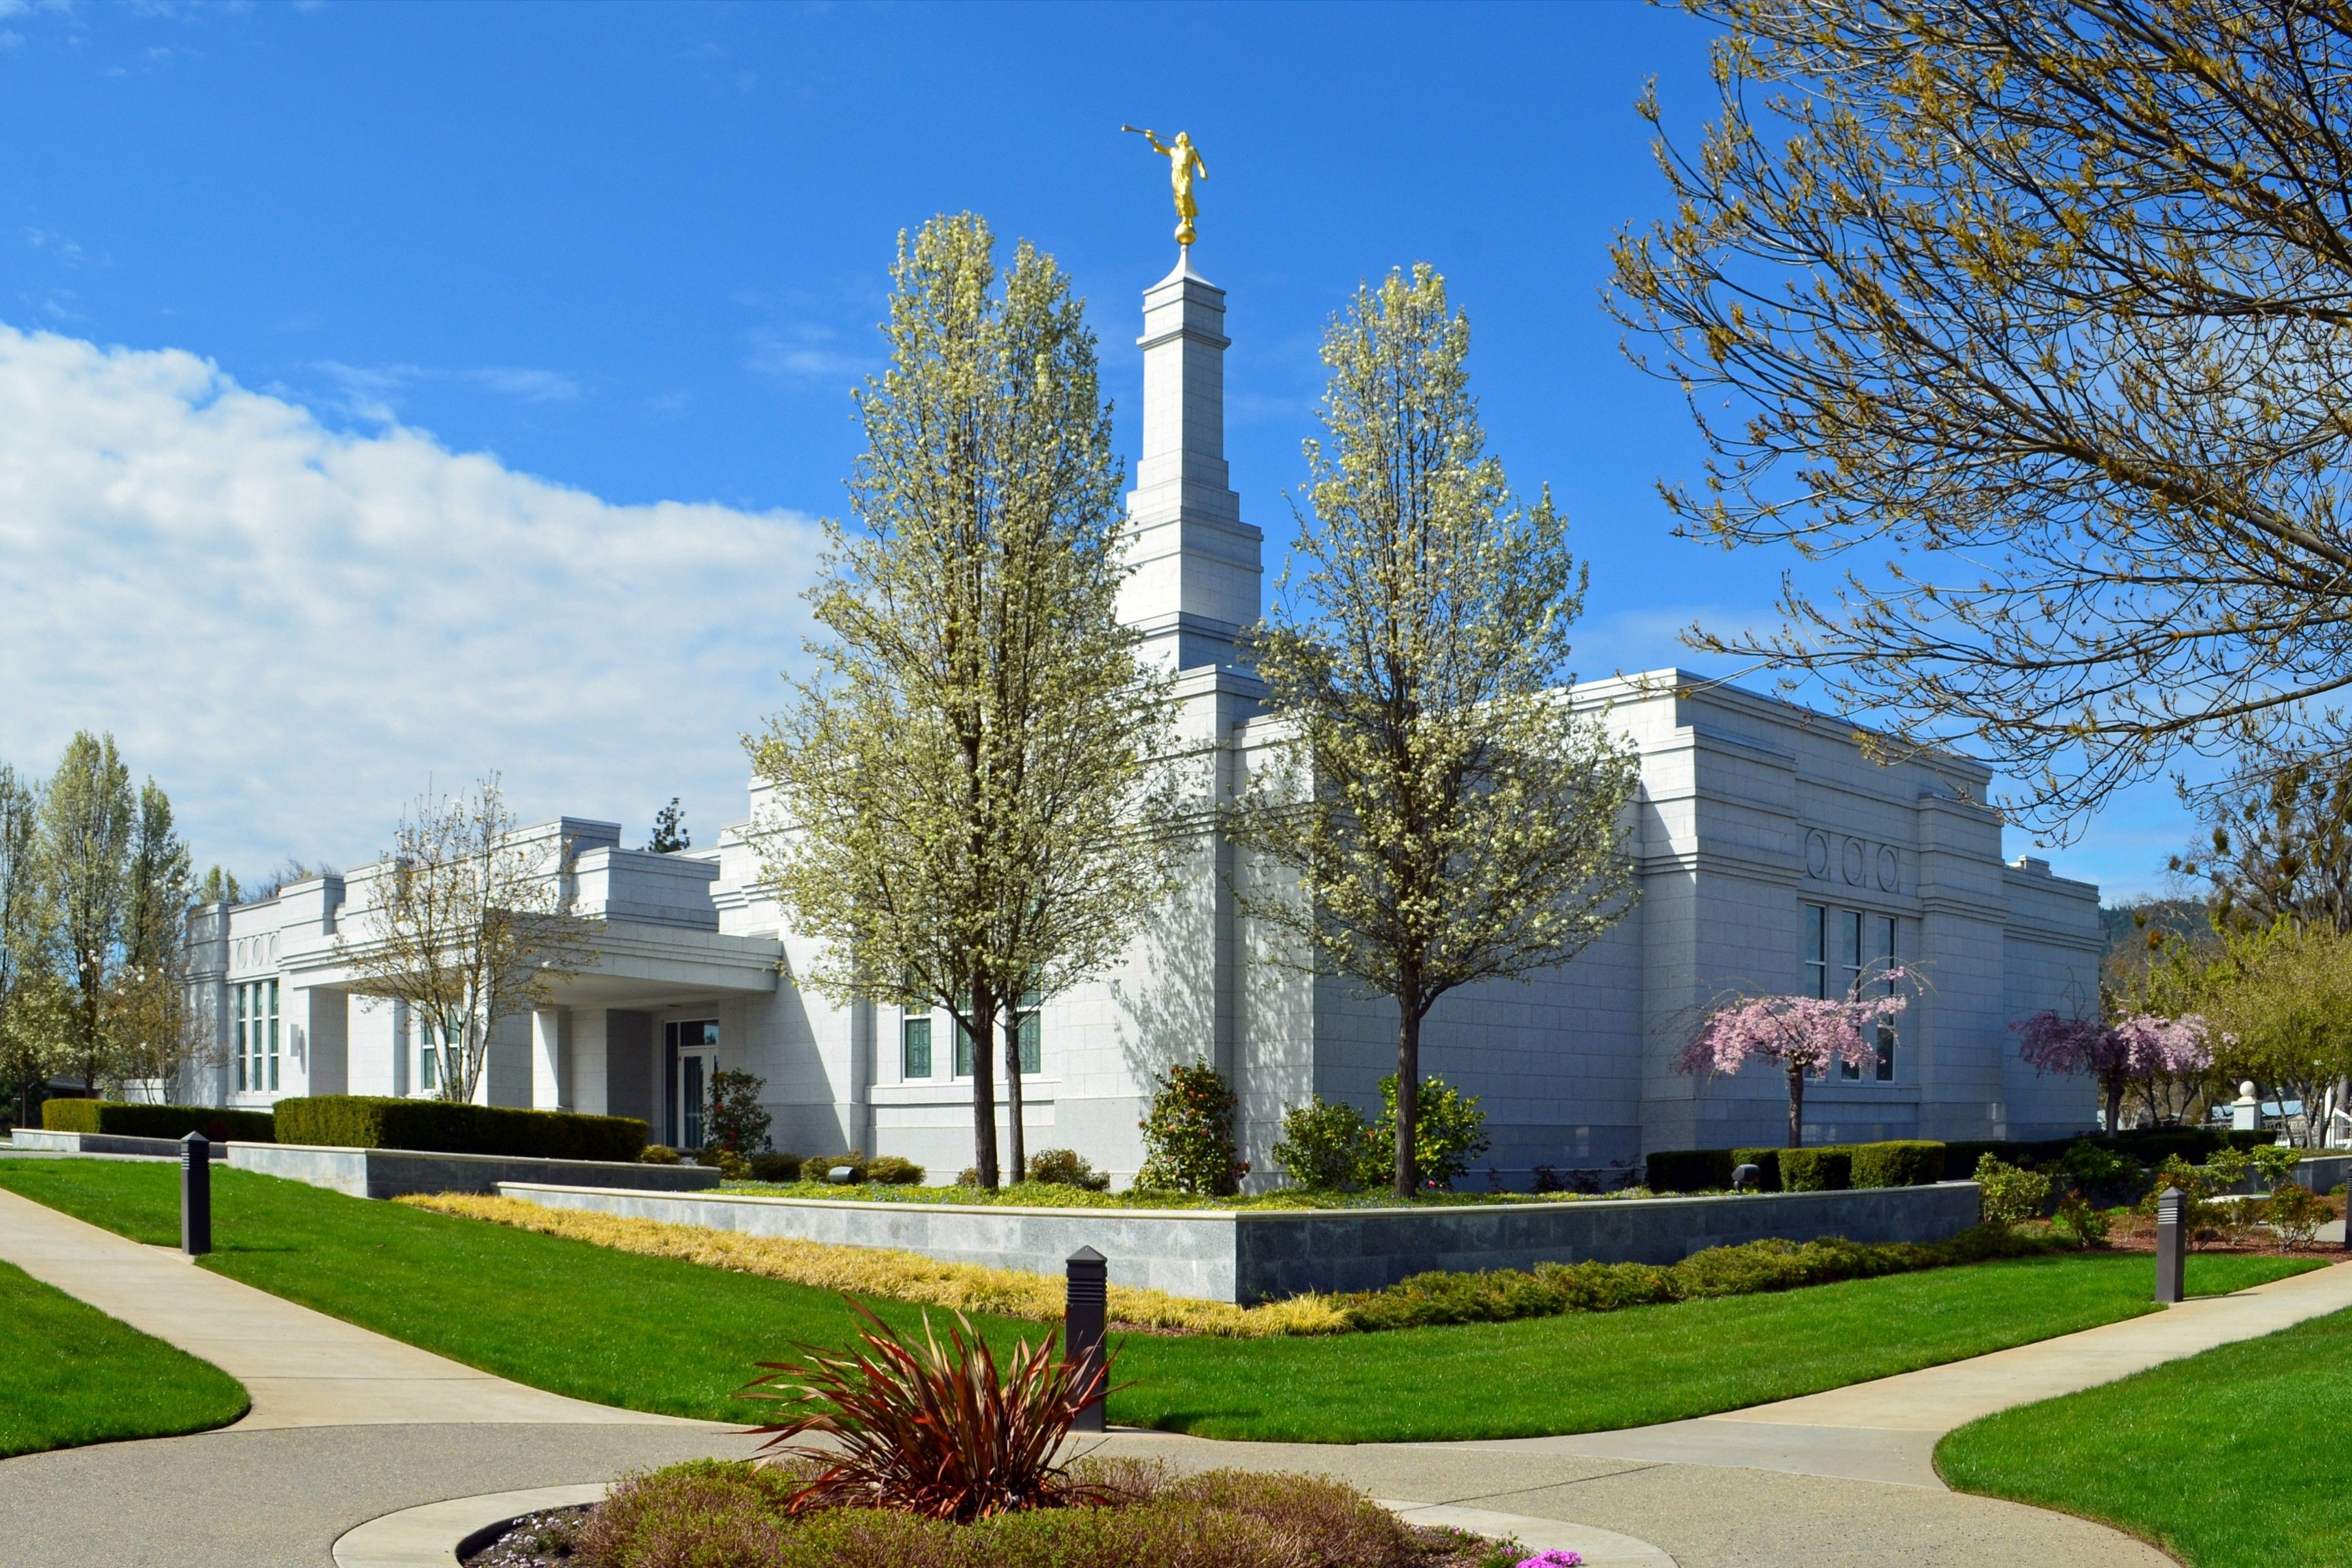 The Medford Oregon Temple side view, including scenery and entrance.